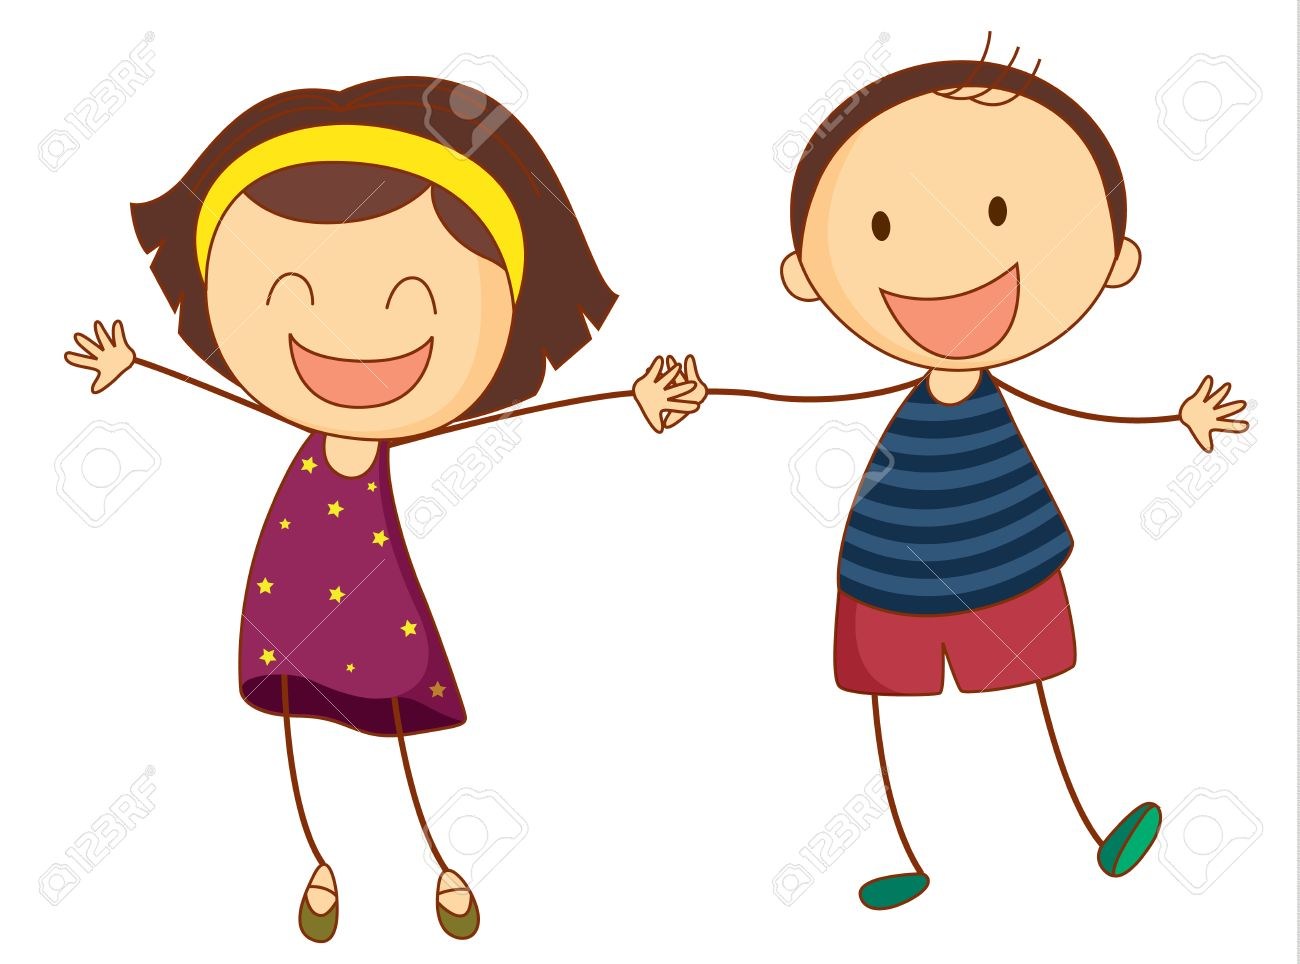 illustration of 2 girls holding hands royalty free cliparts vectors rh 123rf com Holding Hands Clip Art Black and White Clip Art Boy and Girl Holding Hands